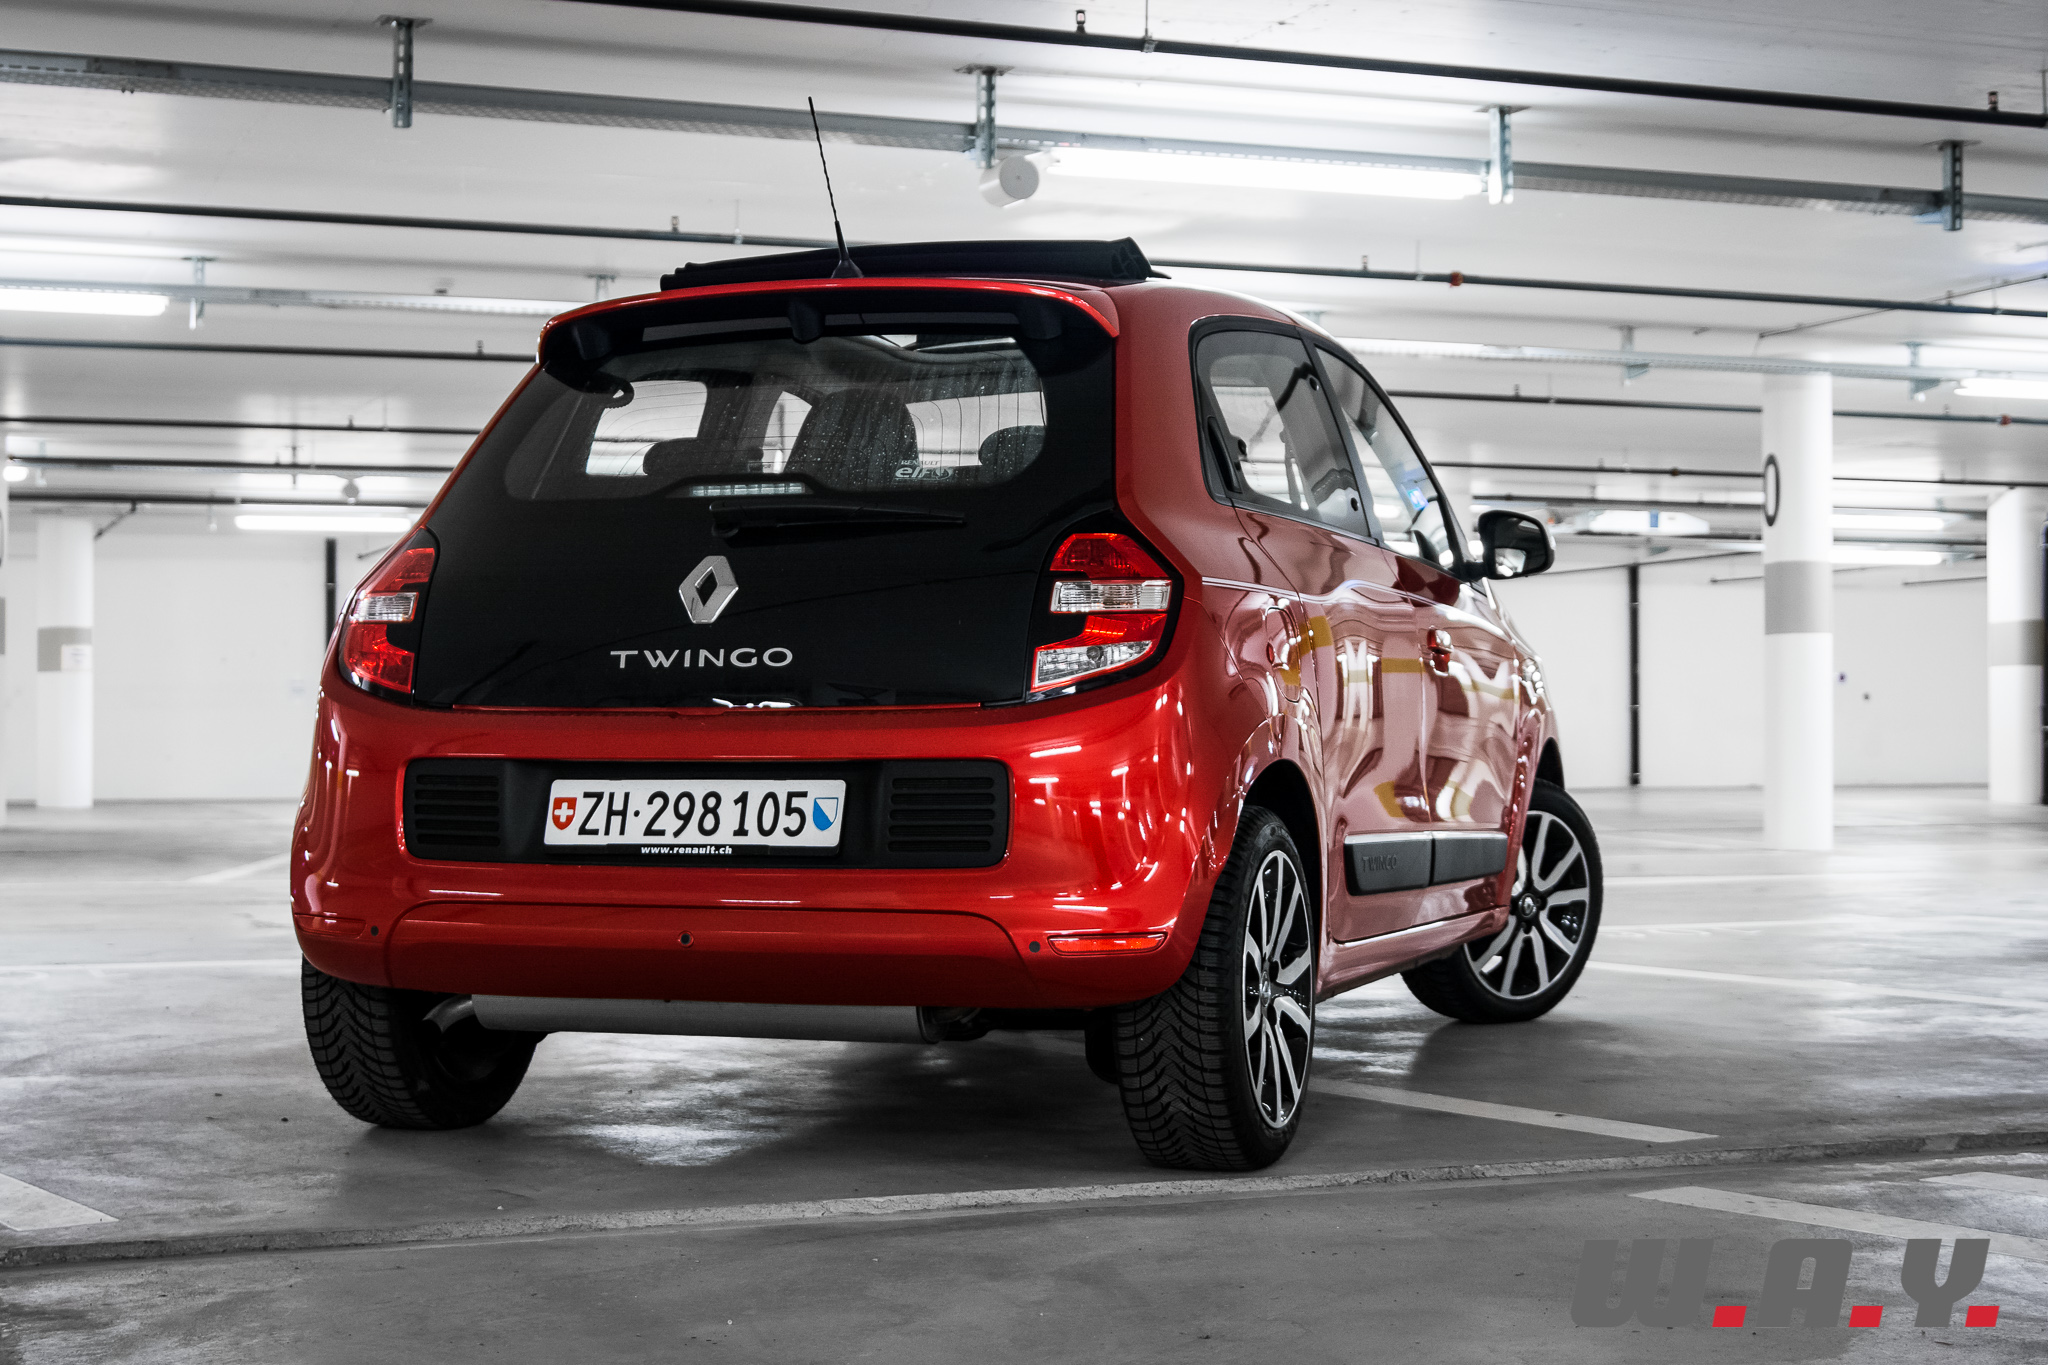 essai renault twingo tce 90 quand la recette change wheels and. Black Bedroom Furniture Sets. Home Design Ideas